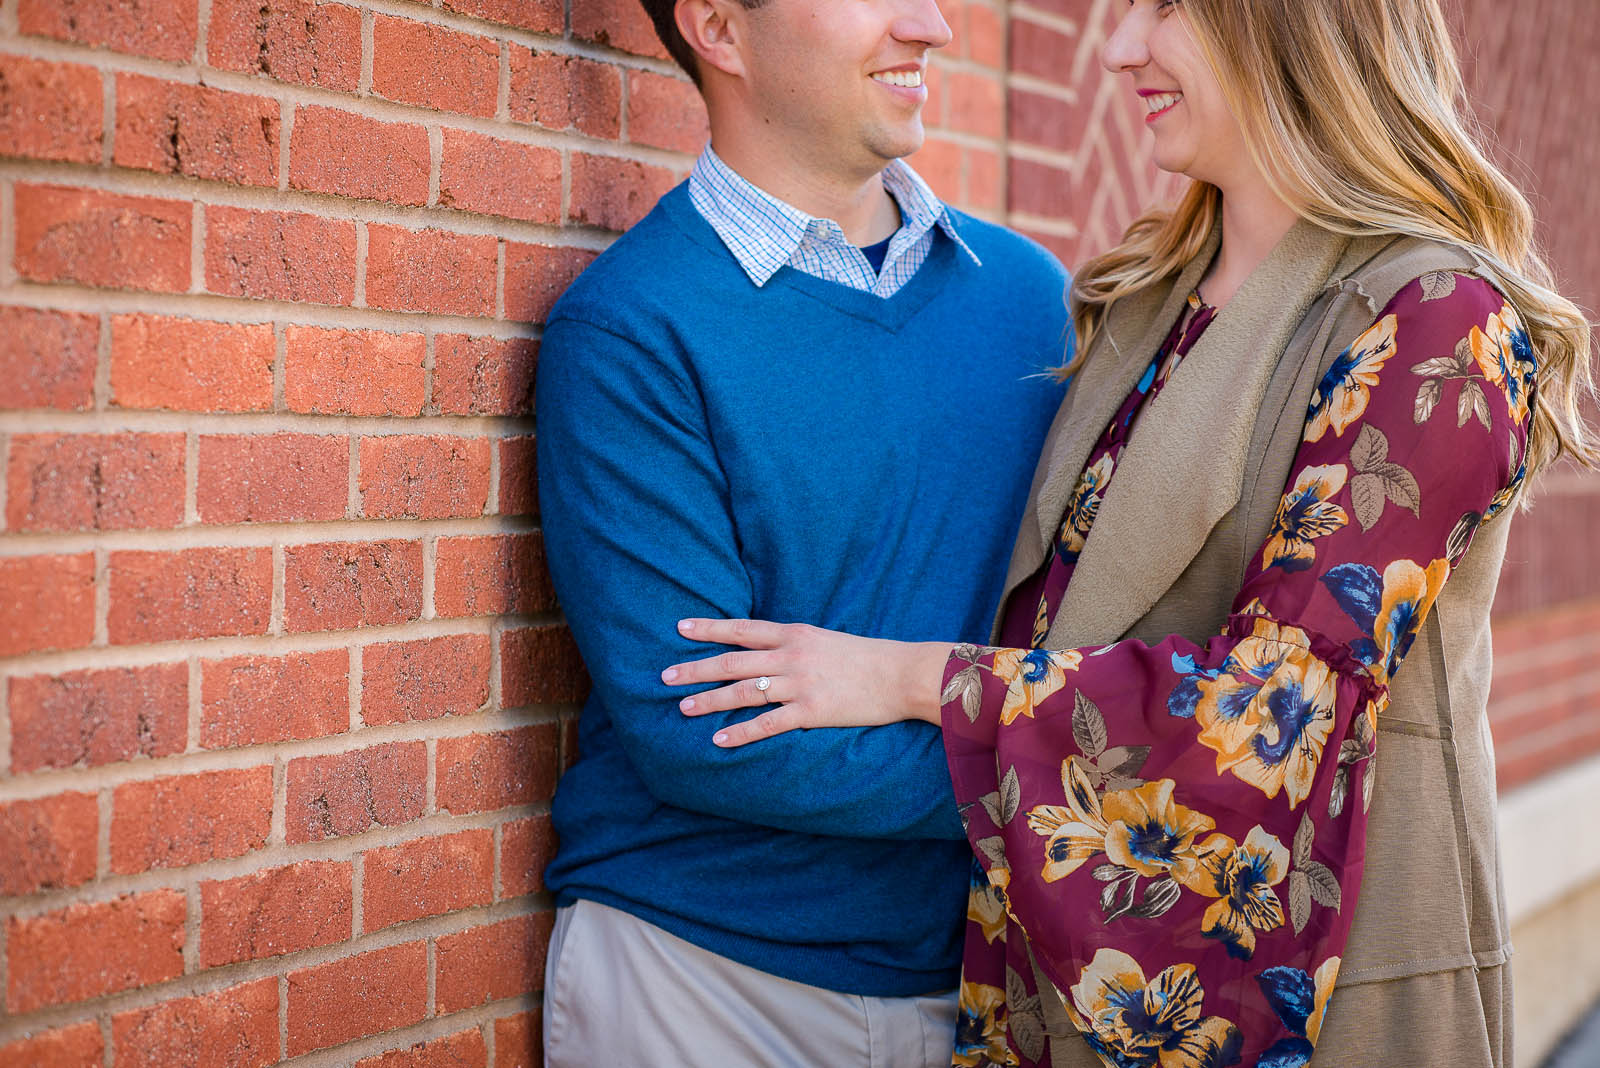 Eric_and_Christy_Photography_Blog_Megan_Nate_Engagement-20